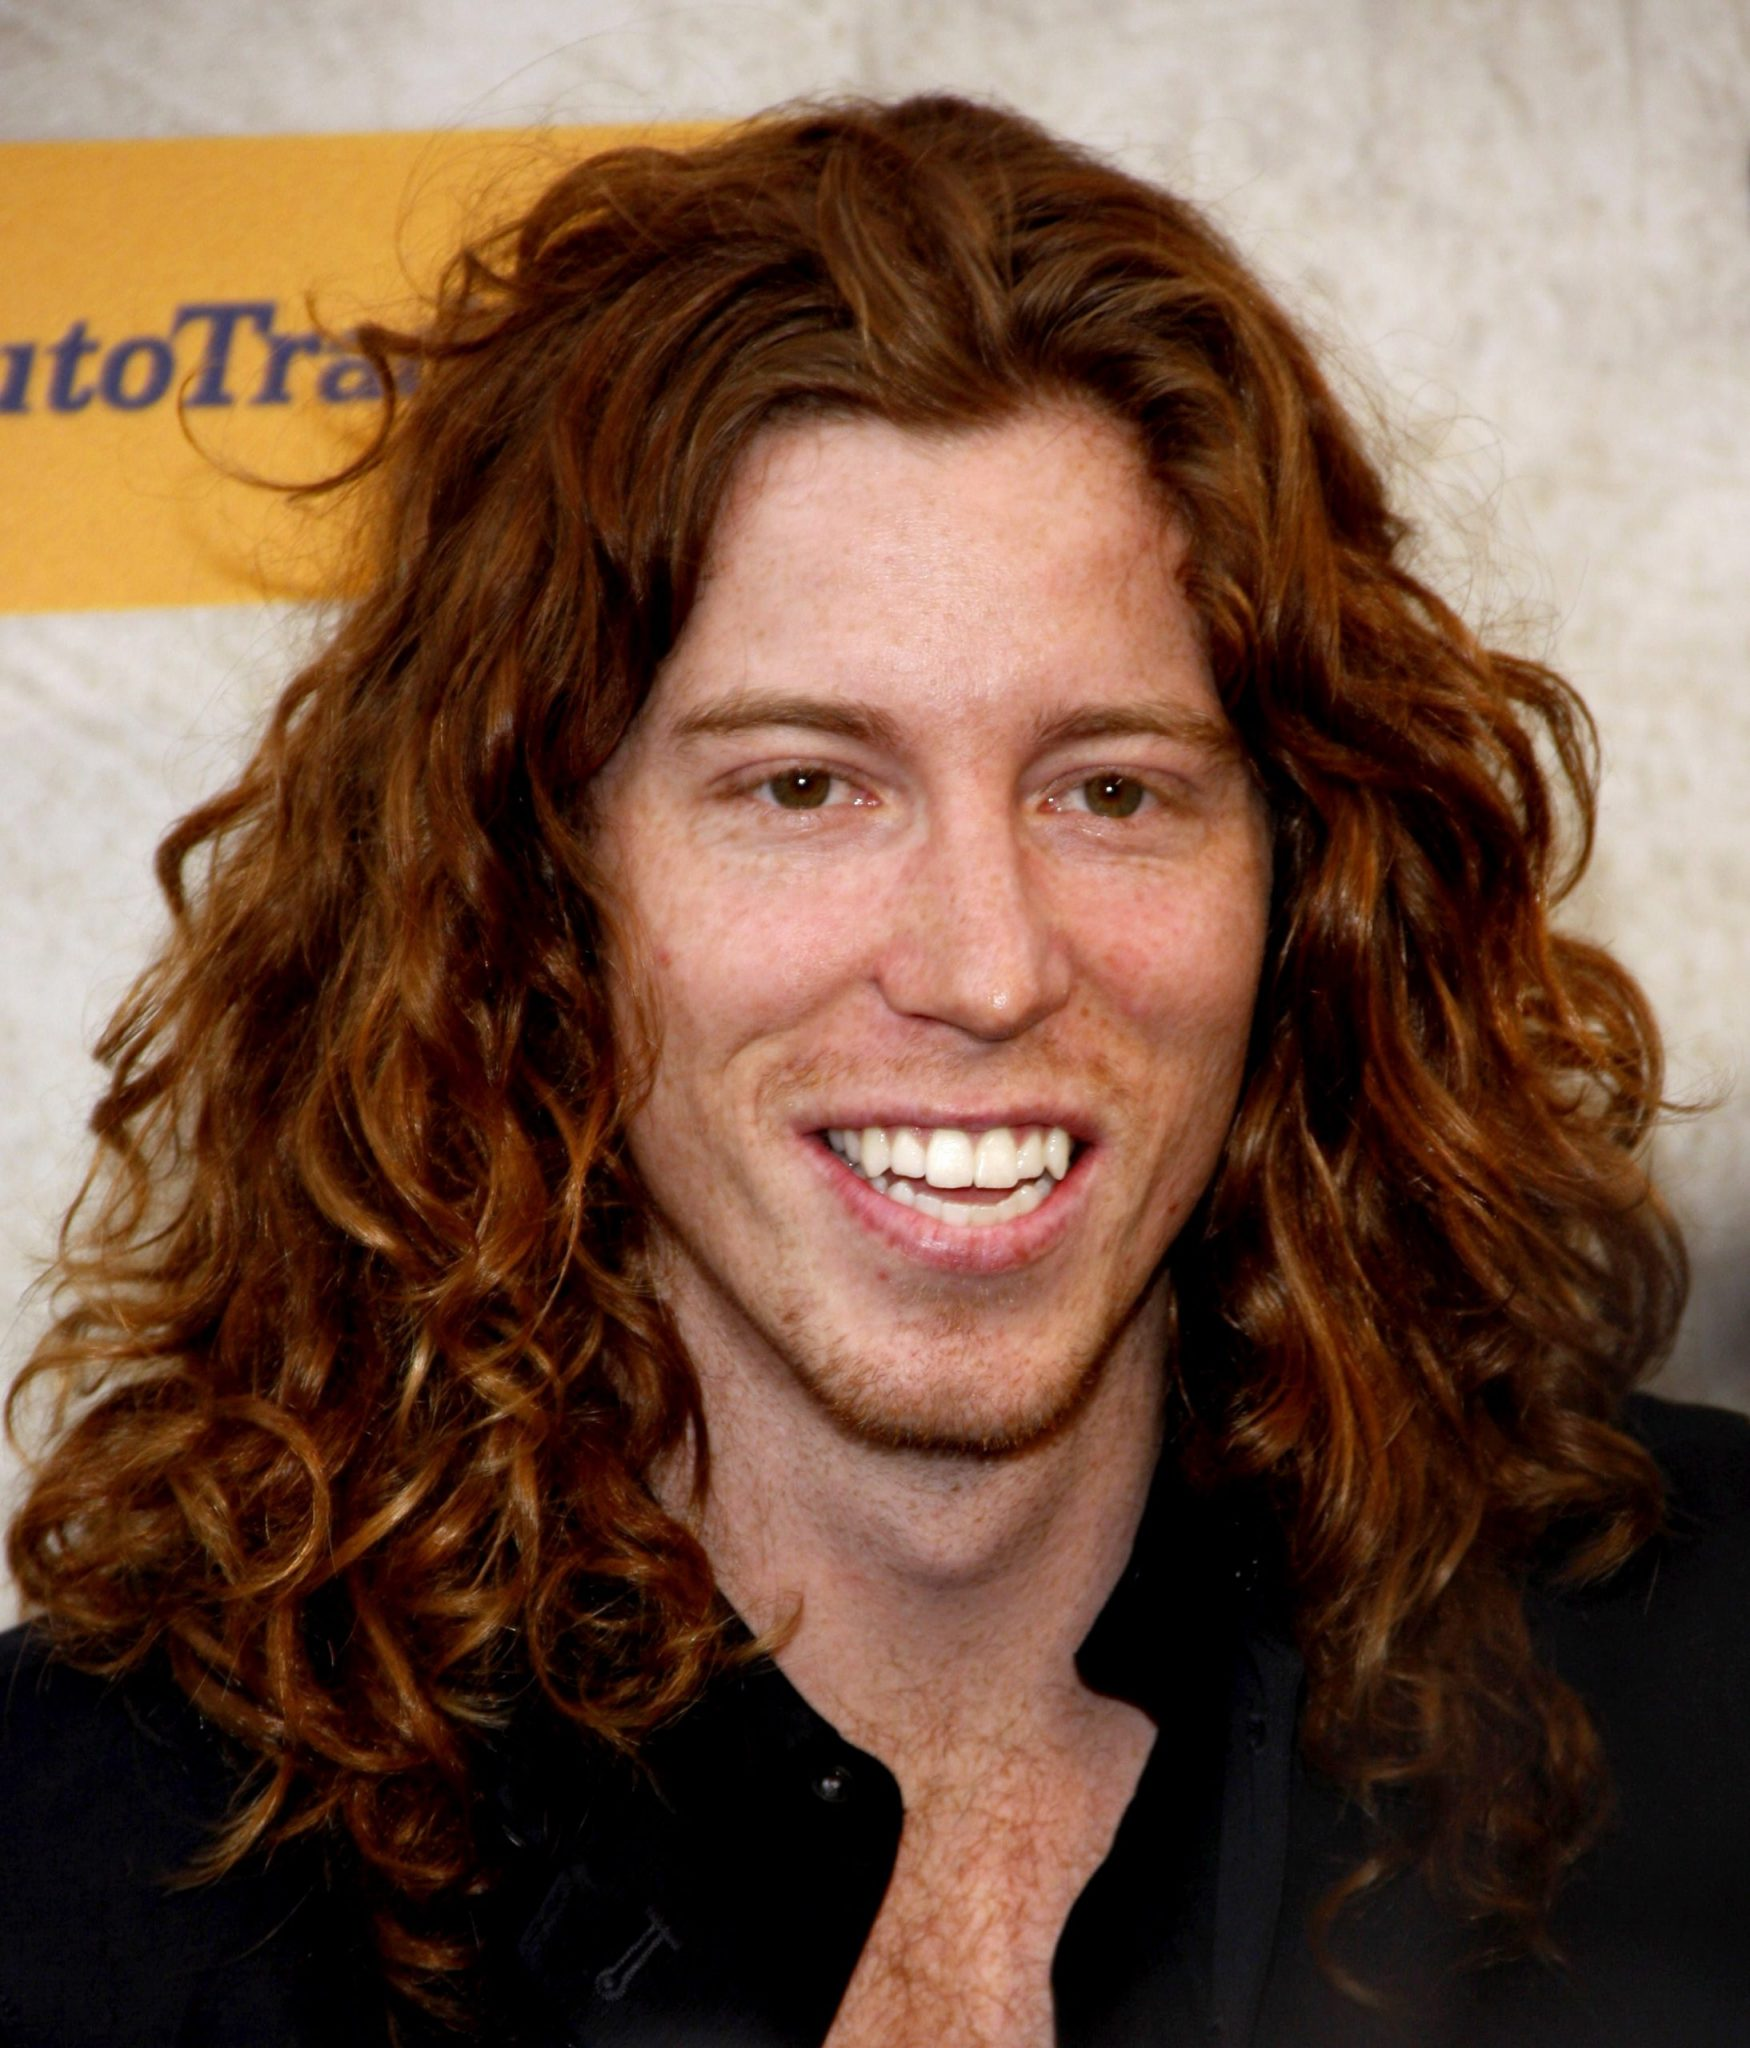 Shaun White wins USA's 100th all-time Winter Olympic gold medal